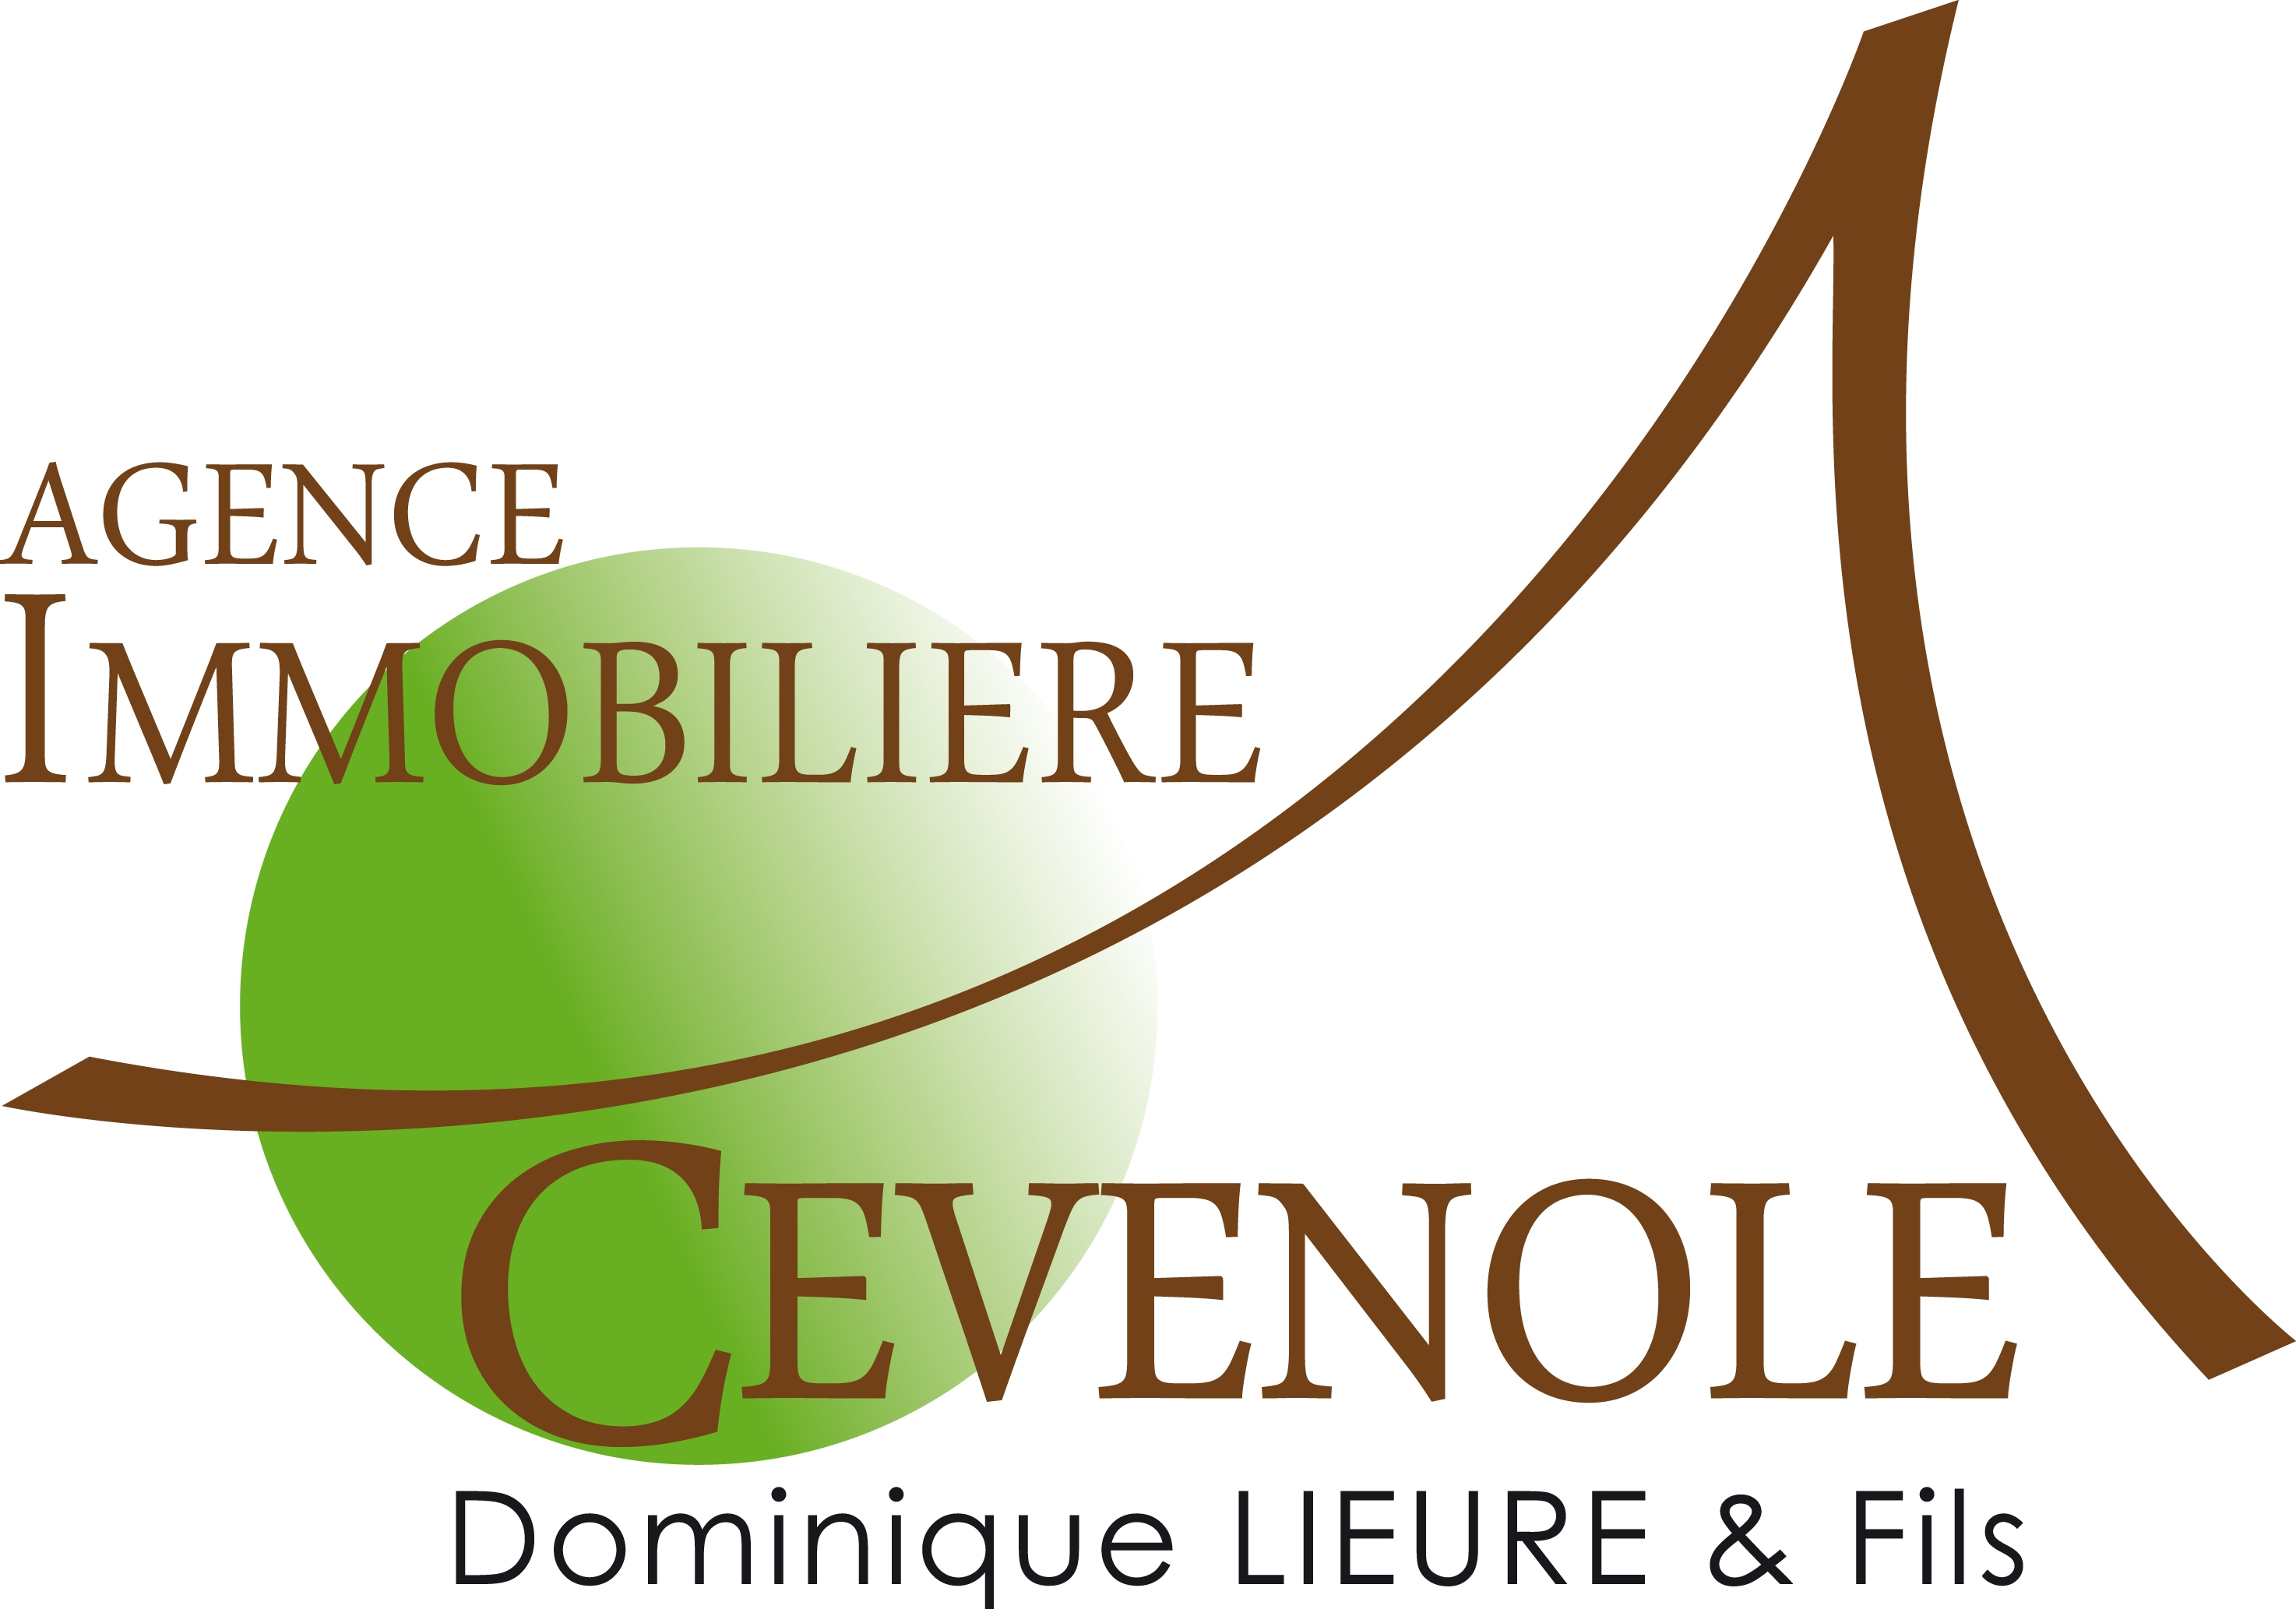 image logo agence immobiliere